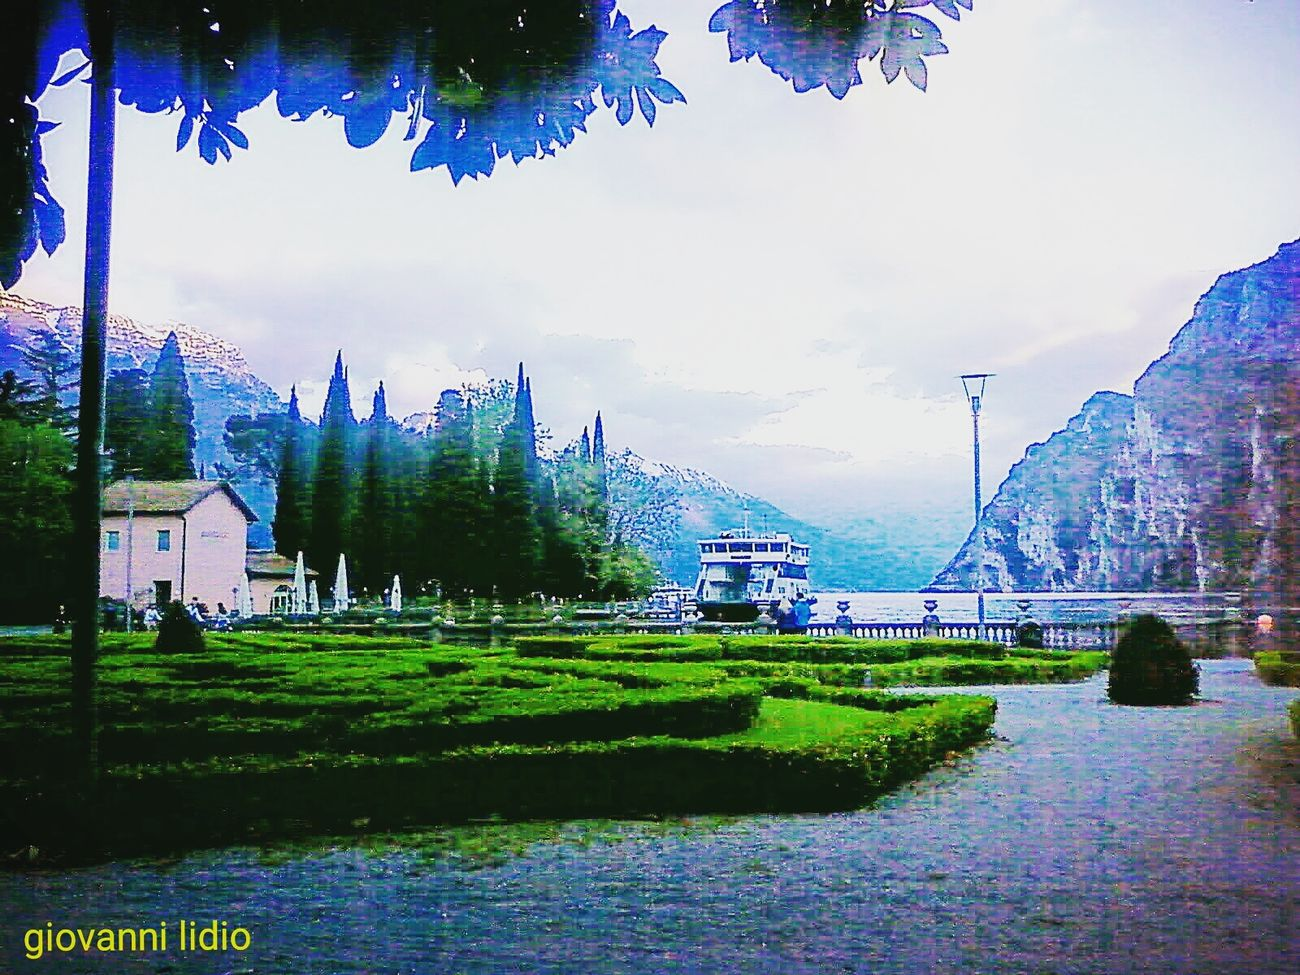 Blue Tree Outdoors Tranquility Travel Destinations Photography Fotografia Lago Di Garda Garda Lake Gardasee Lagodigarda Nature Scenics Landscape Cityscape Mountain Water Beauty In Nature City Tree Dolomites, ıtaly Tranquil Scene Garda Lake Italy Foto No People